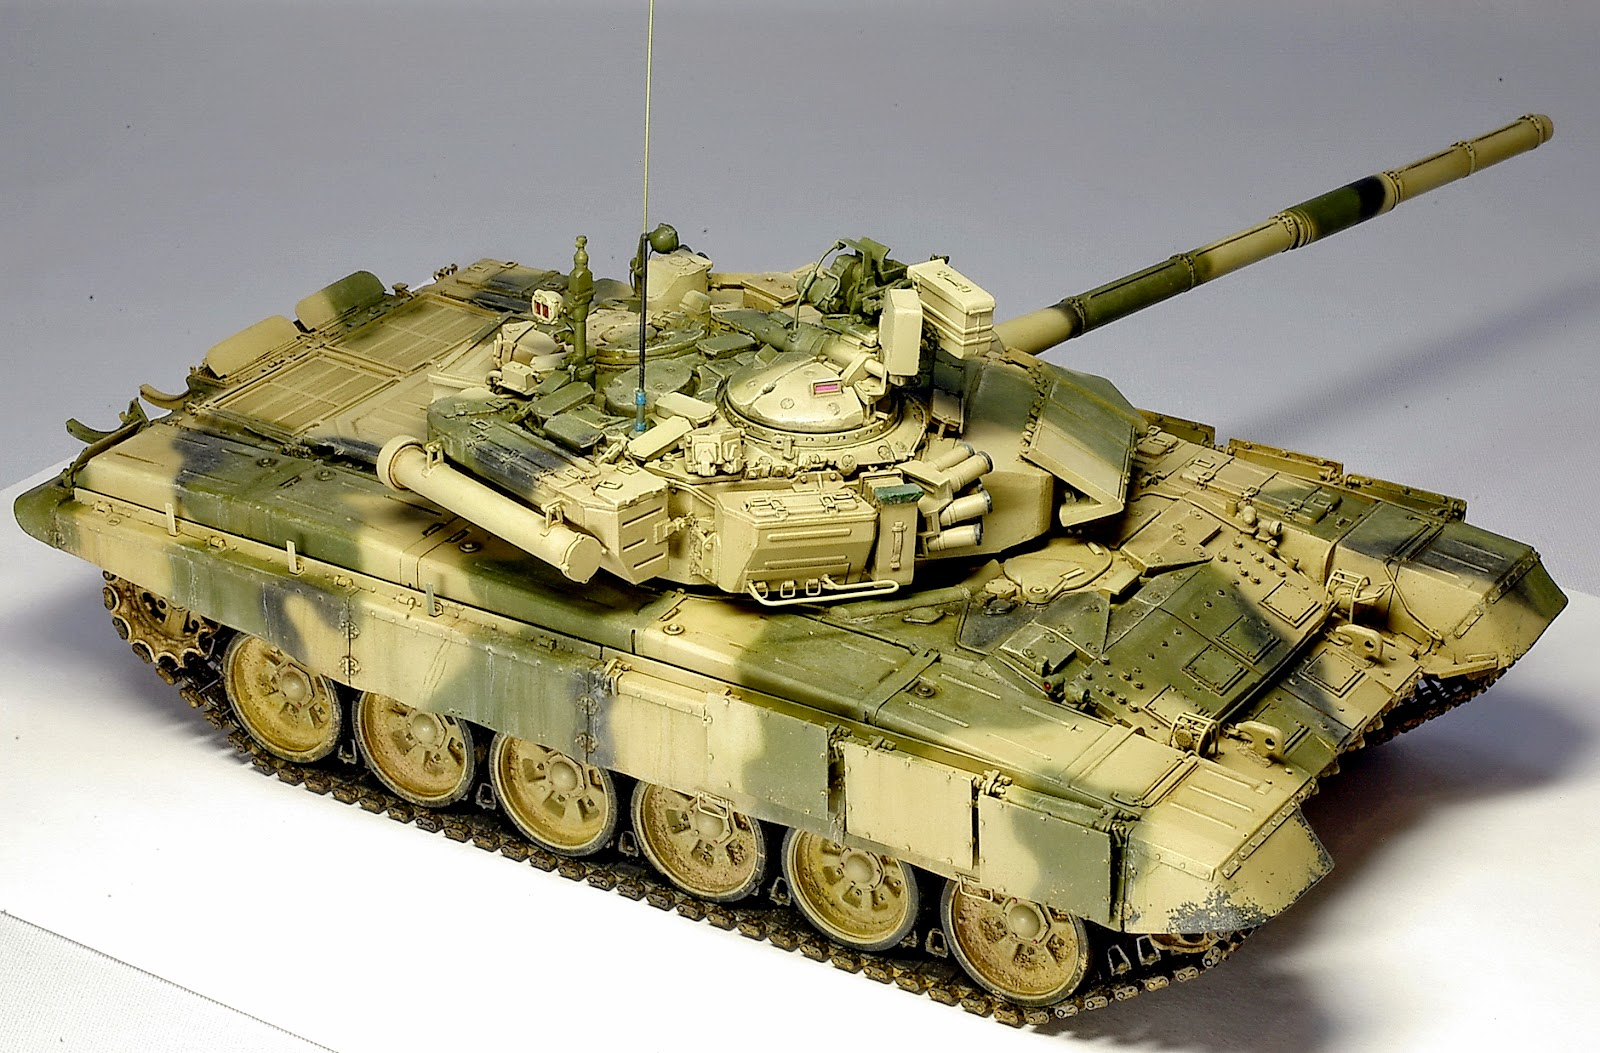 Modernized T 90 Can Bury the Project of New Russian Tank T 14 Armata #958536